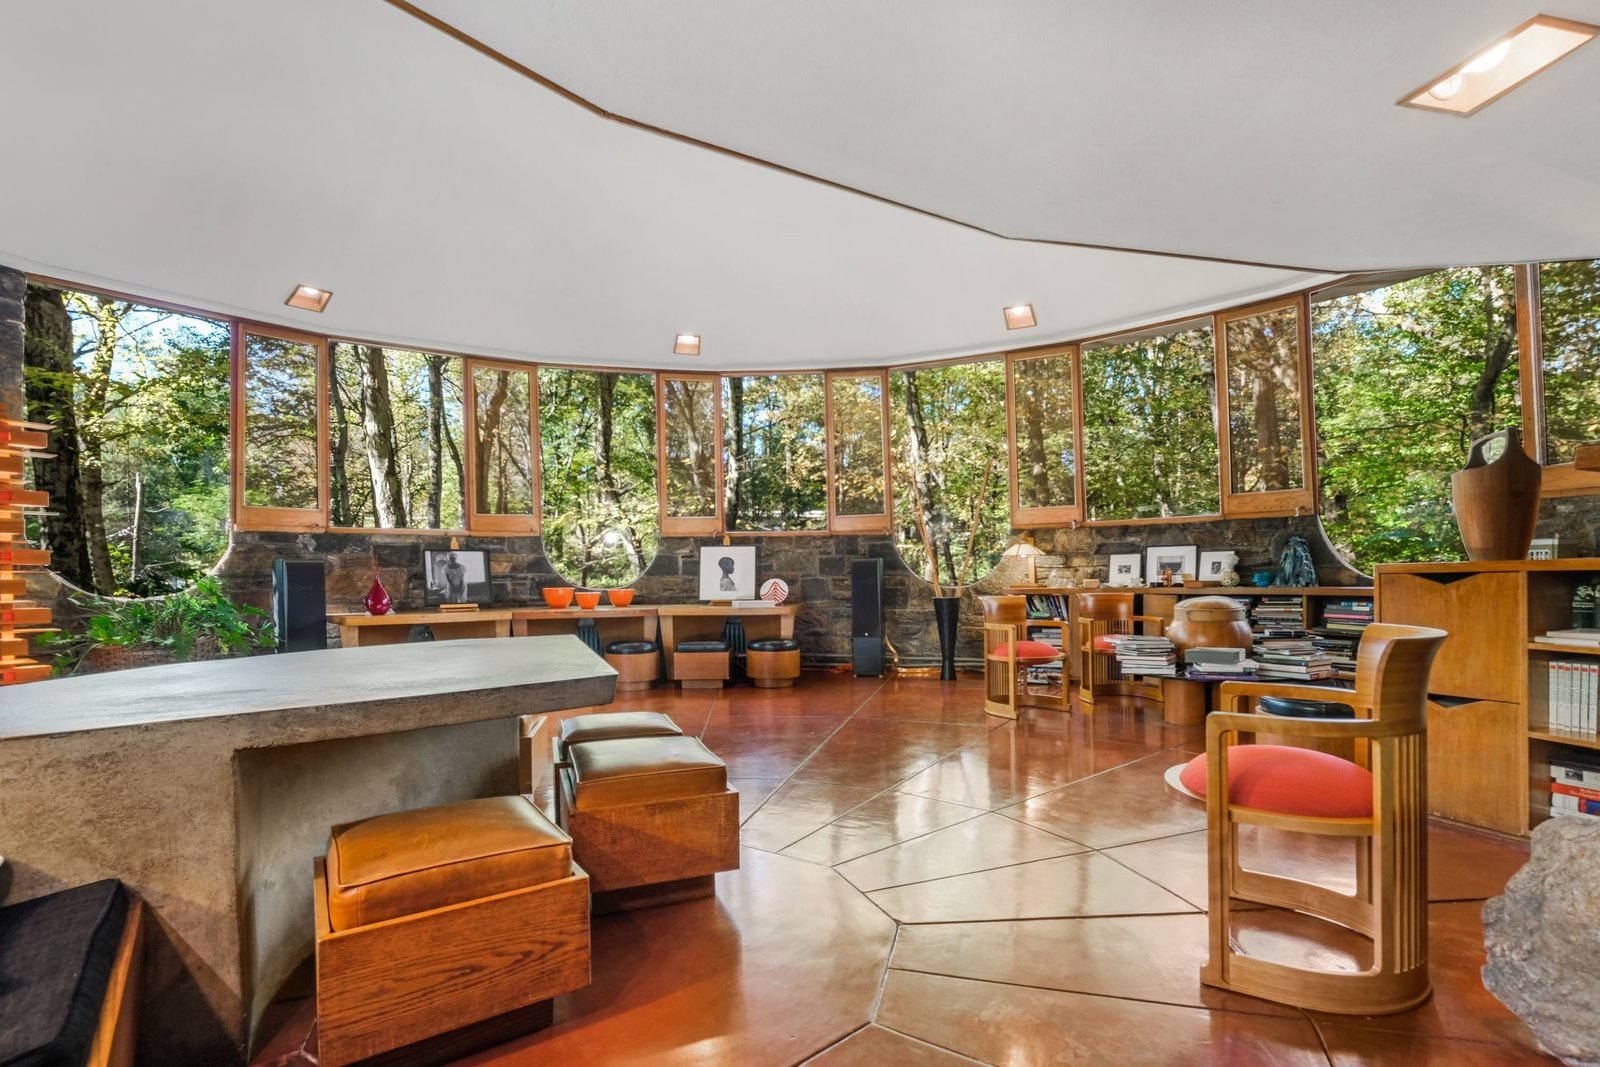 Living Room, Ceiling Lighting, Recessed Lighting, Chair, Bookcase, Coffee Tables, Ottomans, and Bench  Photo 5 of 10 in A Usonian Masterpiece by Frank Lloyd Wright Is on the Market For $1.5M